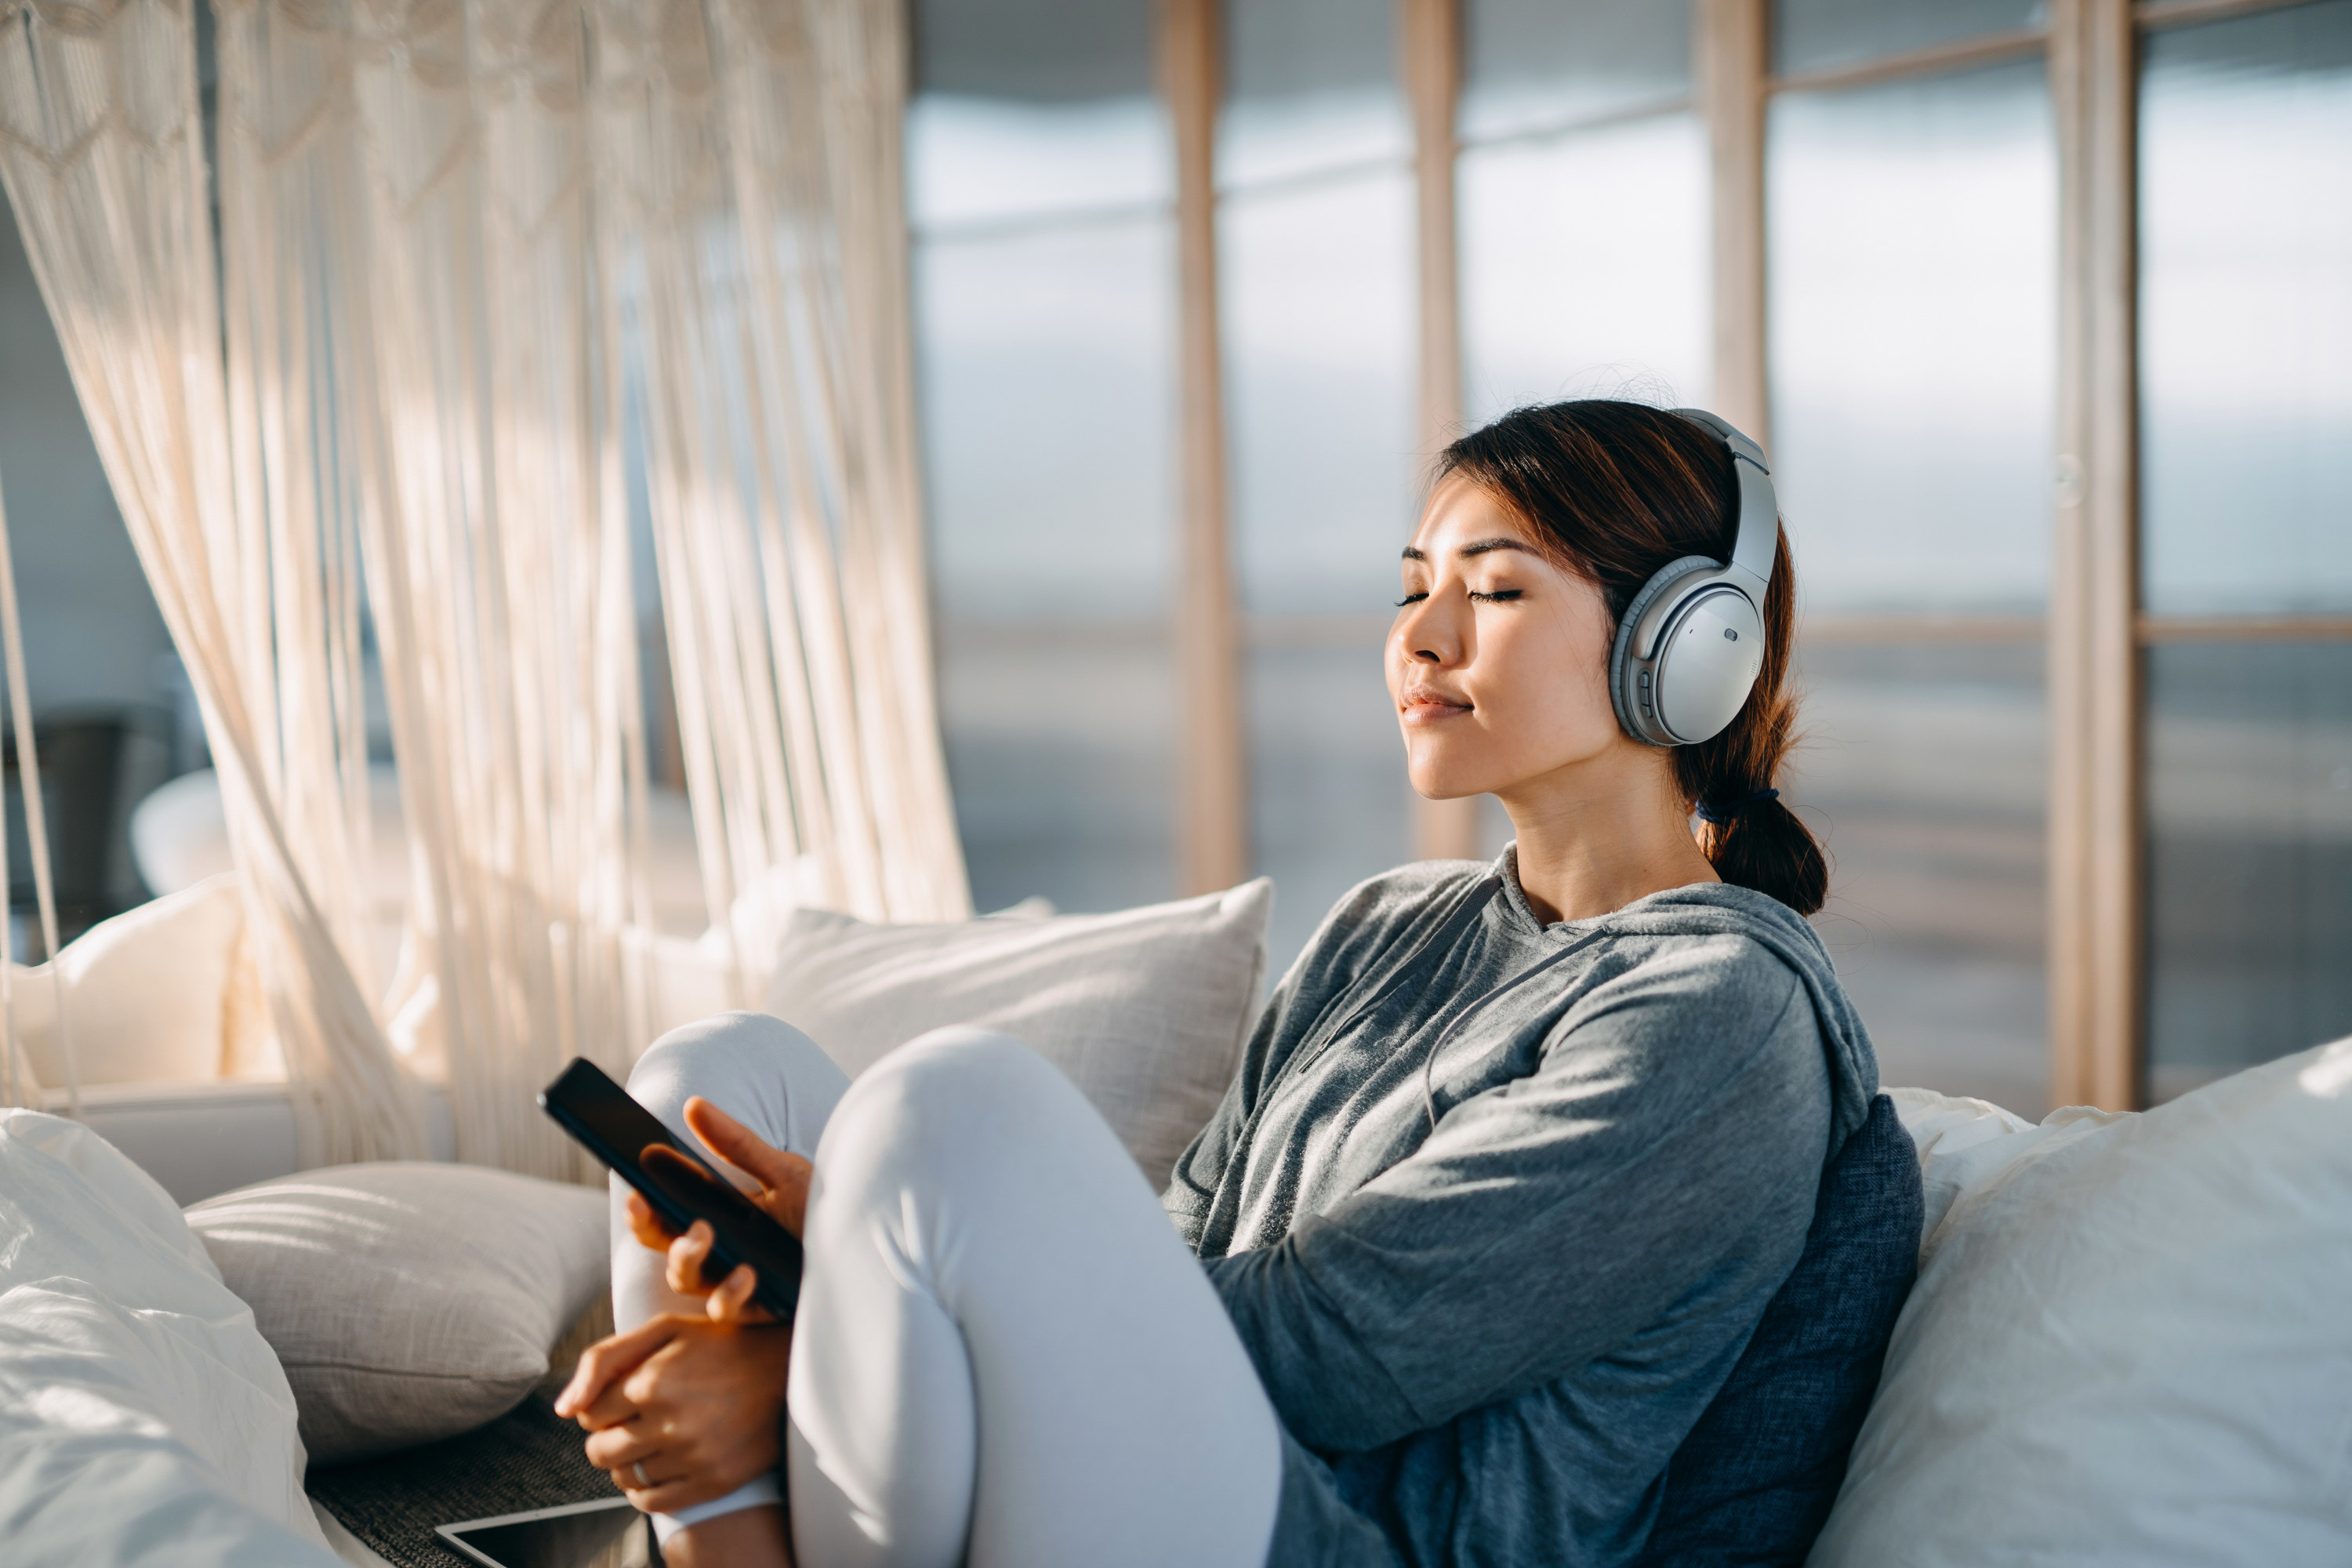 Younger woman listening to music on headphones, while sitting on a white sofa in breezy-looking room